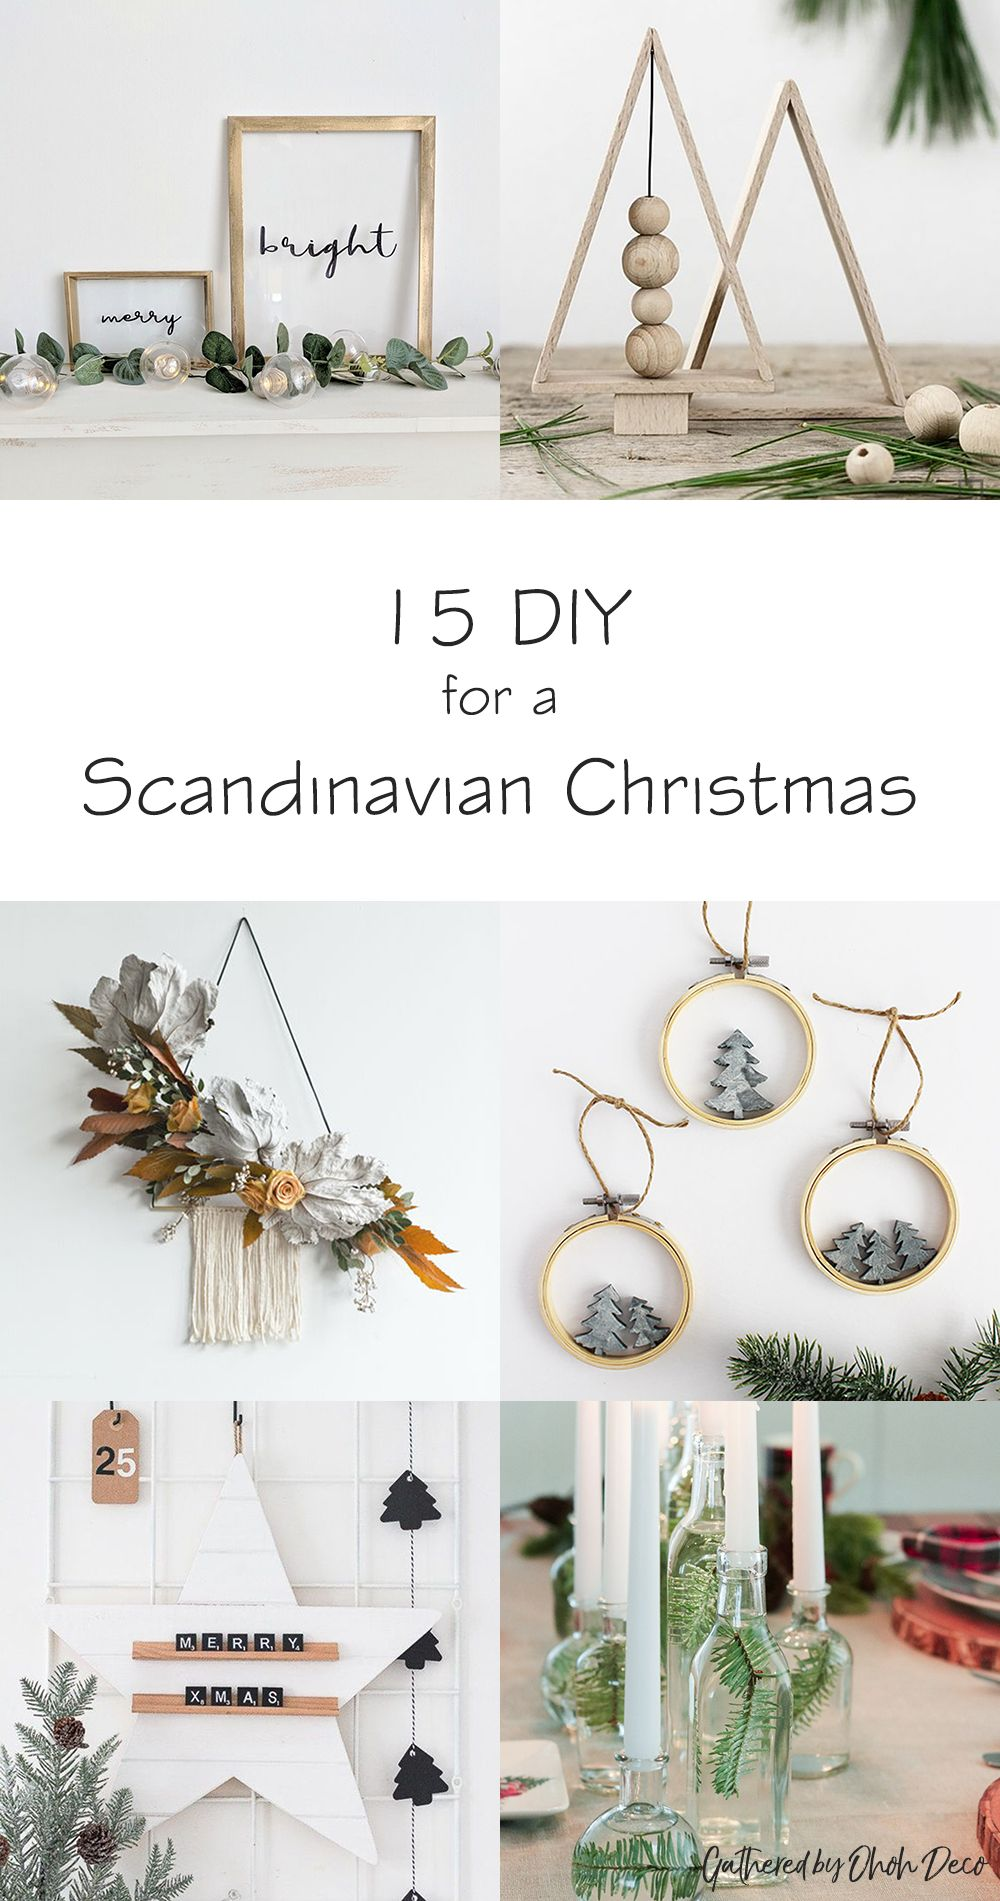 How To Create A Diy Scandinavian Christmas Decor Ohoh Deco Scandinavian Christmas Decorations Christmas Decor Diy Scandinavian Christmas